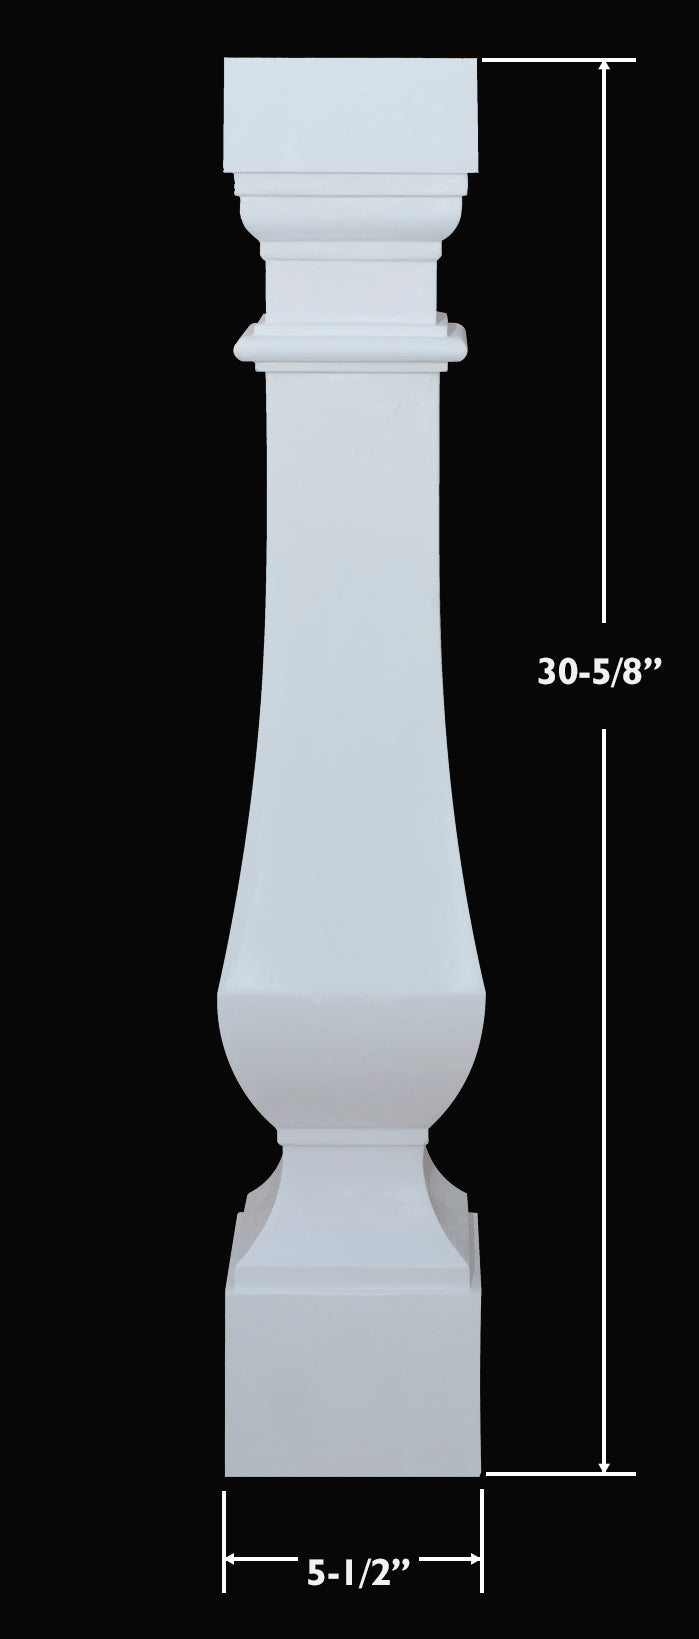 Dimensions for The Gainesville Classic Stone Pre-Finished Baluster Design from Brockwell Incorporated